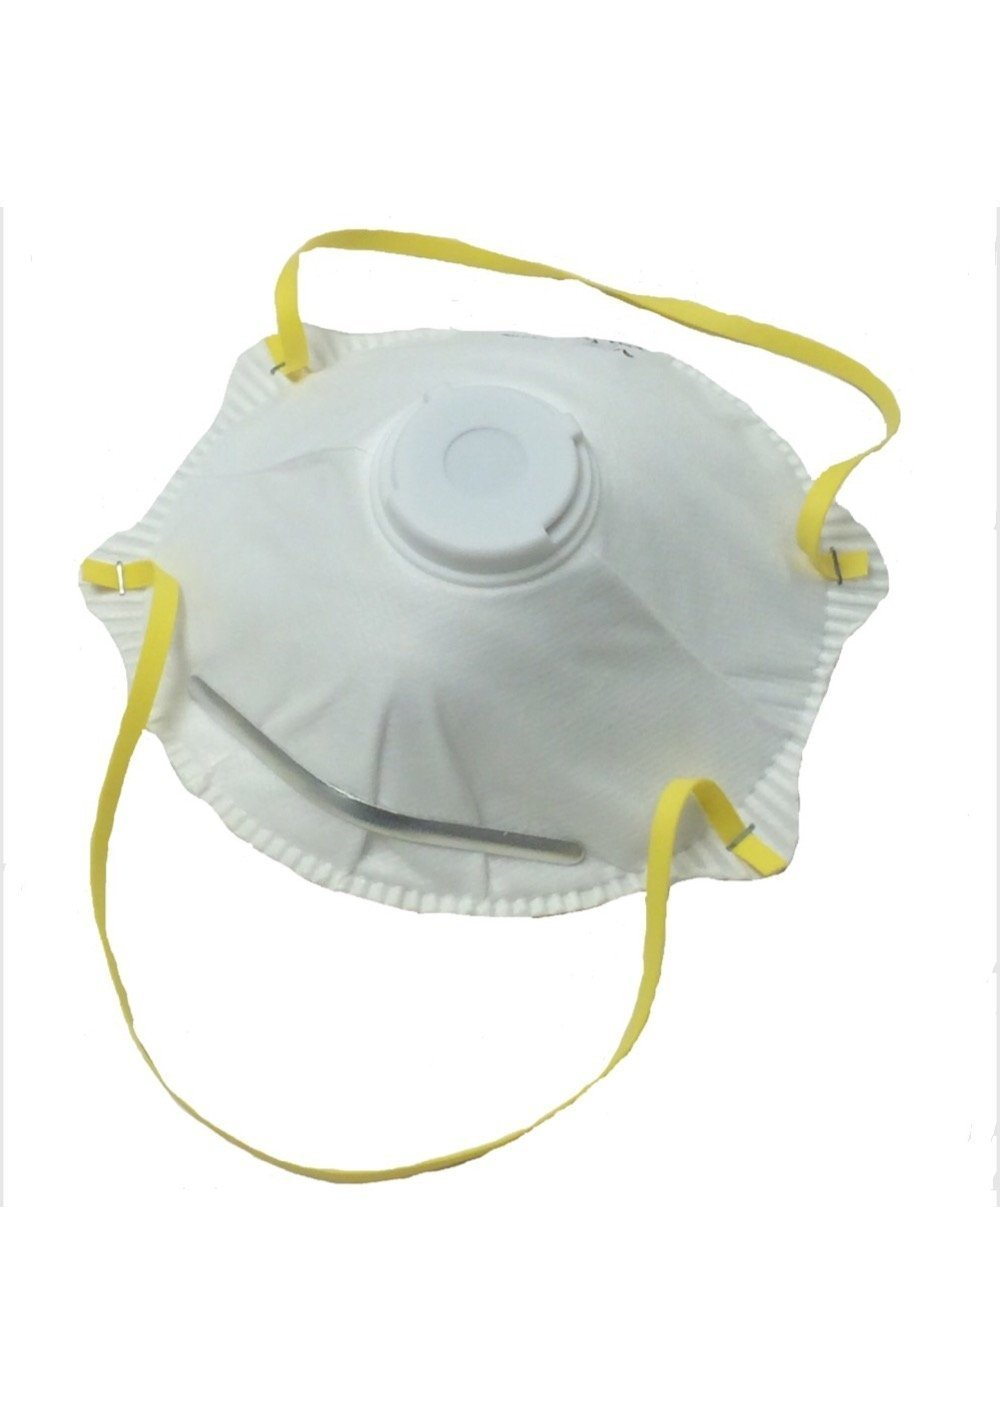 N95 NIOSH Approved Face Mask Respirator Protection(20 Pack)